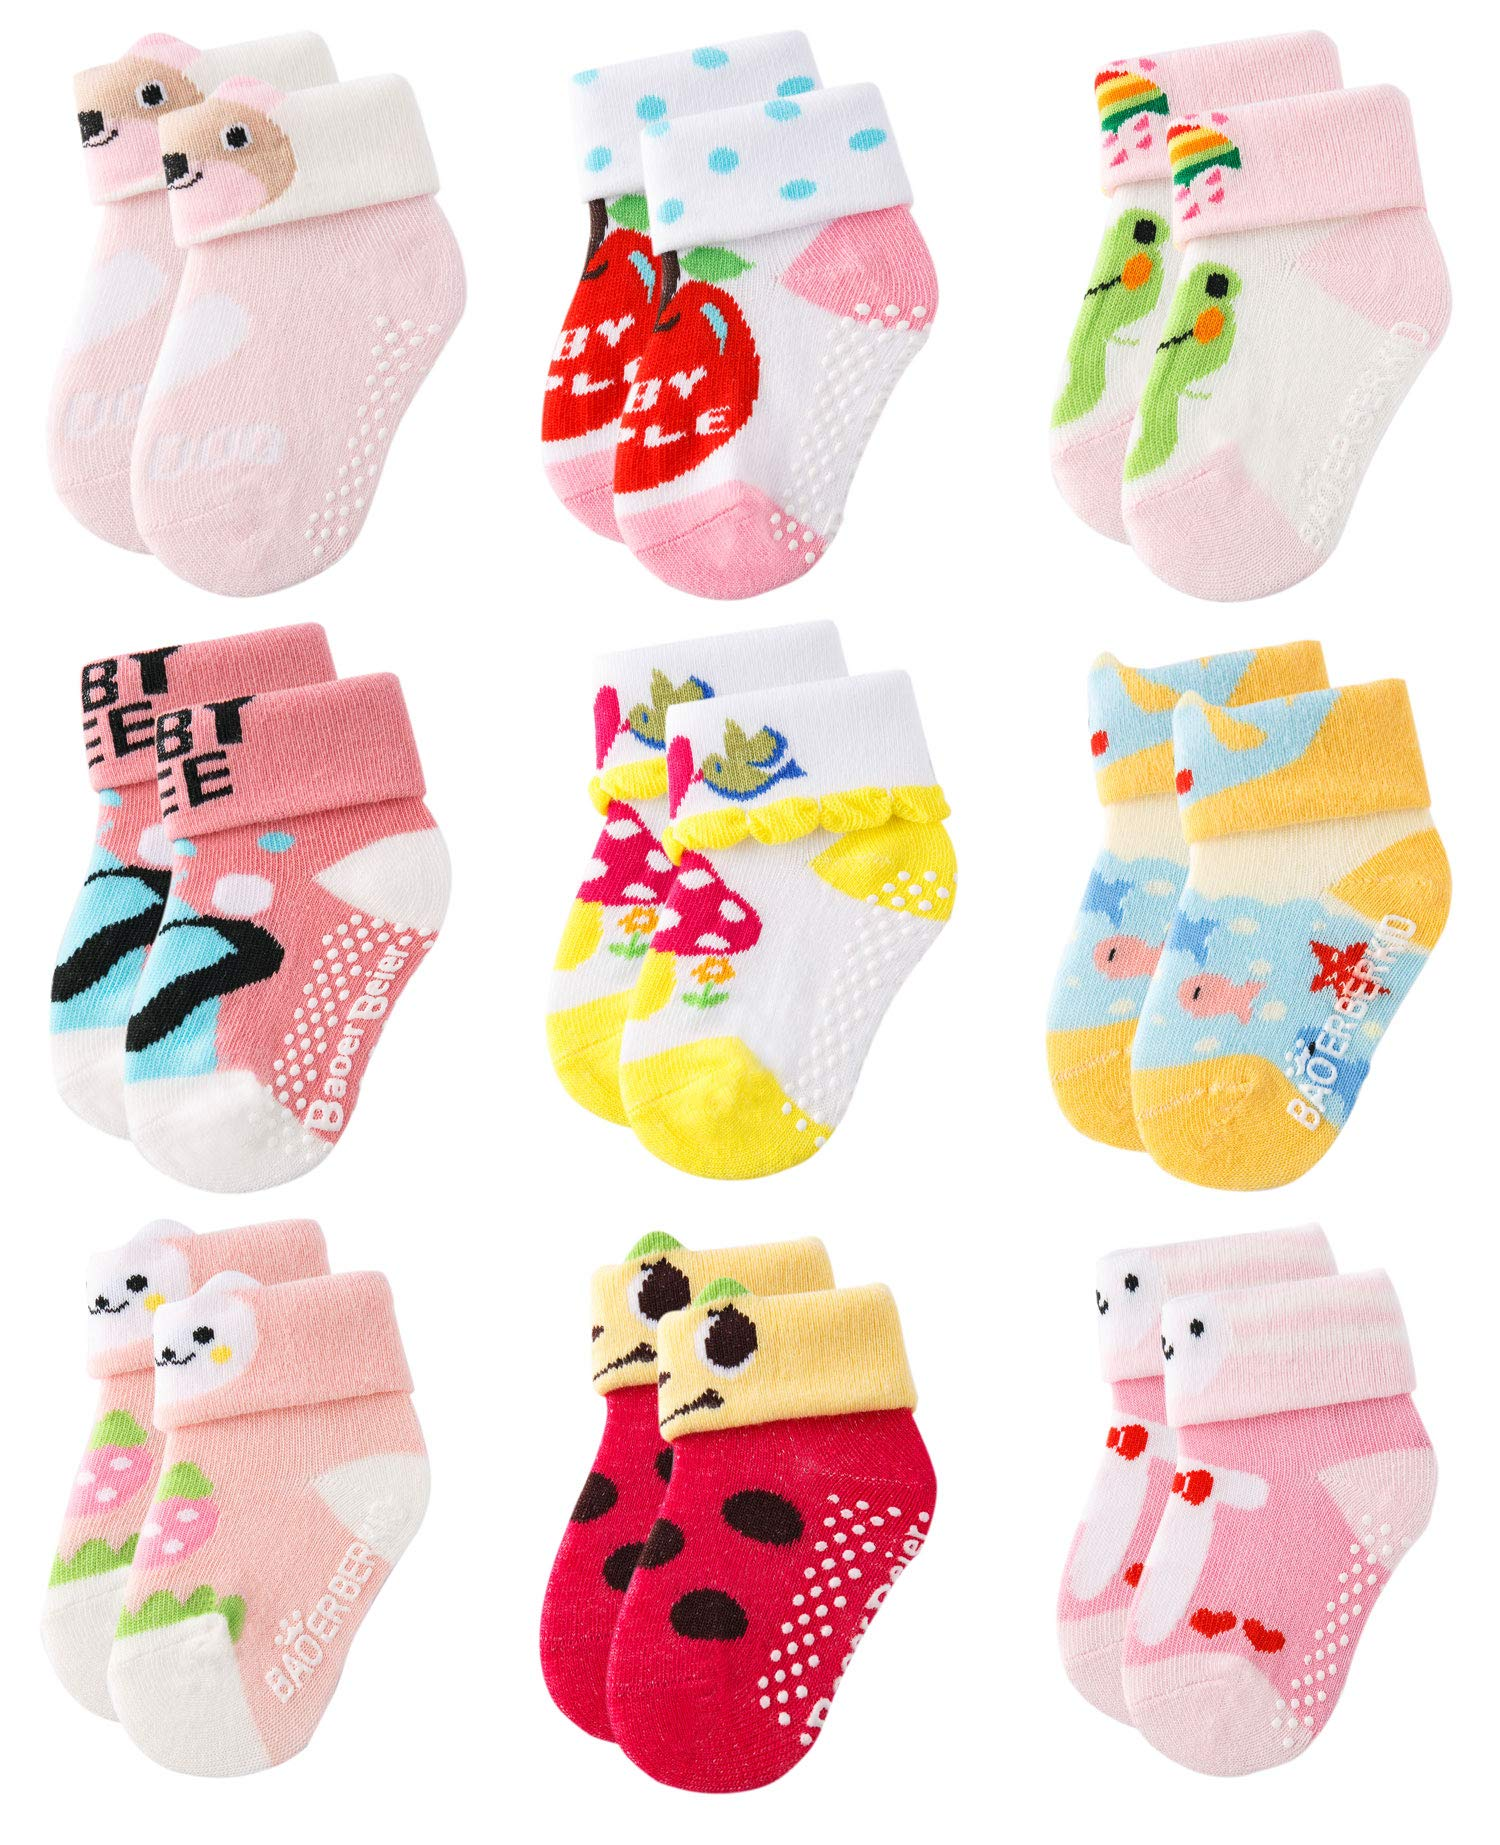 Growth Pal 9 Pack Non Skid Anti Slip Baby Socks with Grips Cotton Socks for Walking Toddlers 0-36 Months Girl-01 by Growth Pal